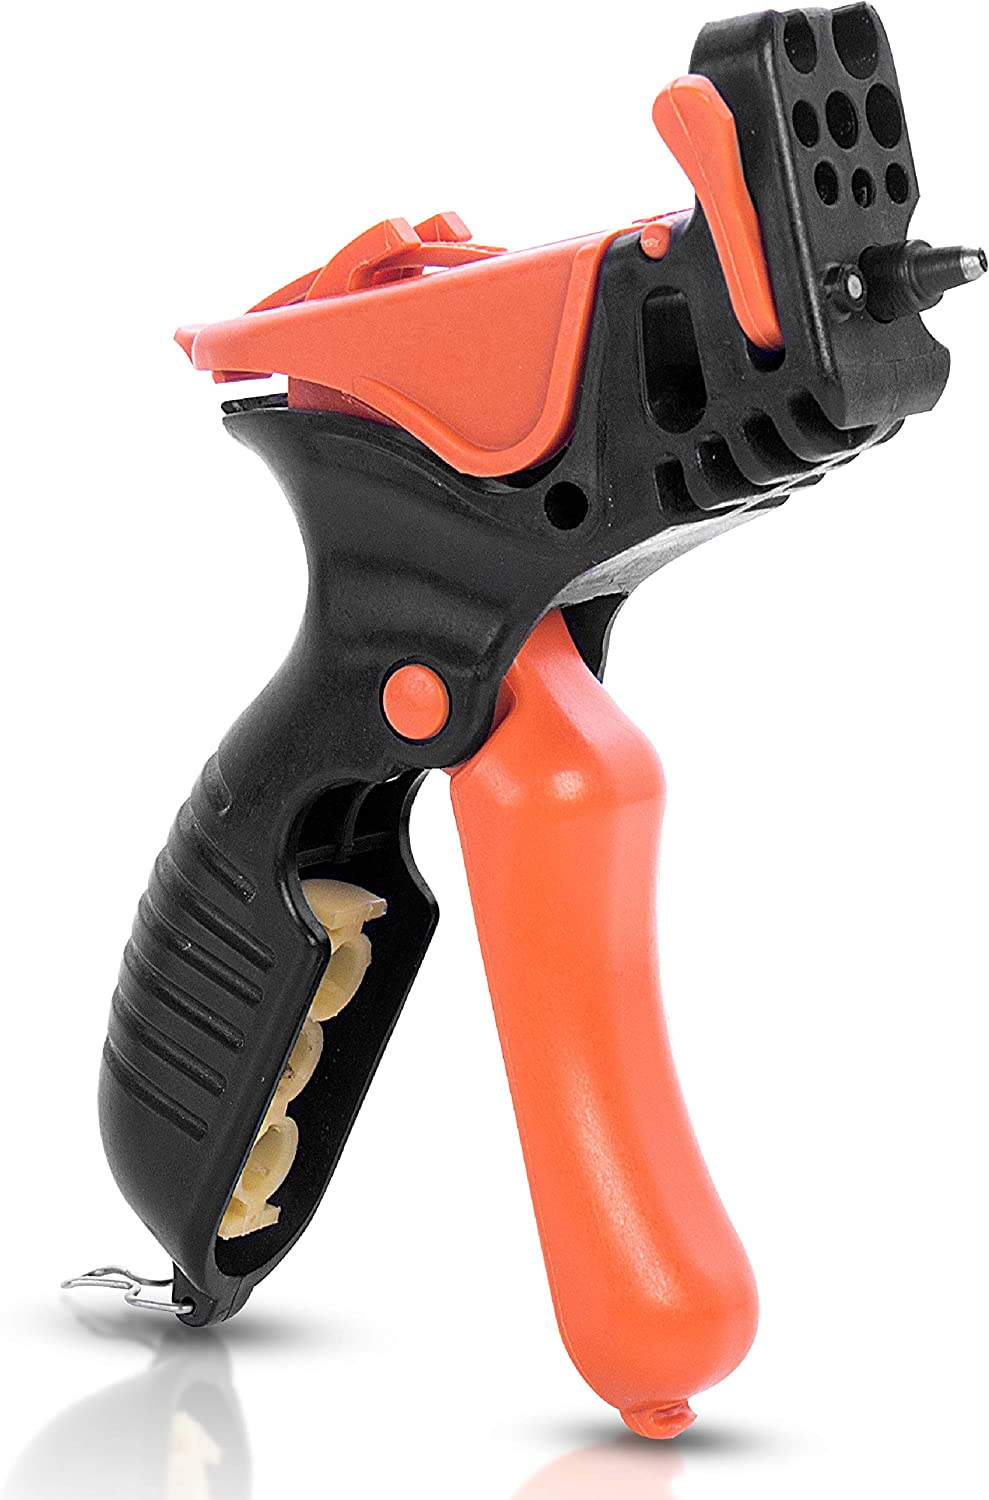 AL-MAGOR Trigger TR-3 Garden Tool: 3 in 1 Multitask Punching Cutting Inserting Sprinklers & Drippers in Irrigation Tube Pipes, 3mm Punch Tip & Sharp Blade for Cutting, Model 350030-P